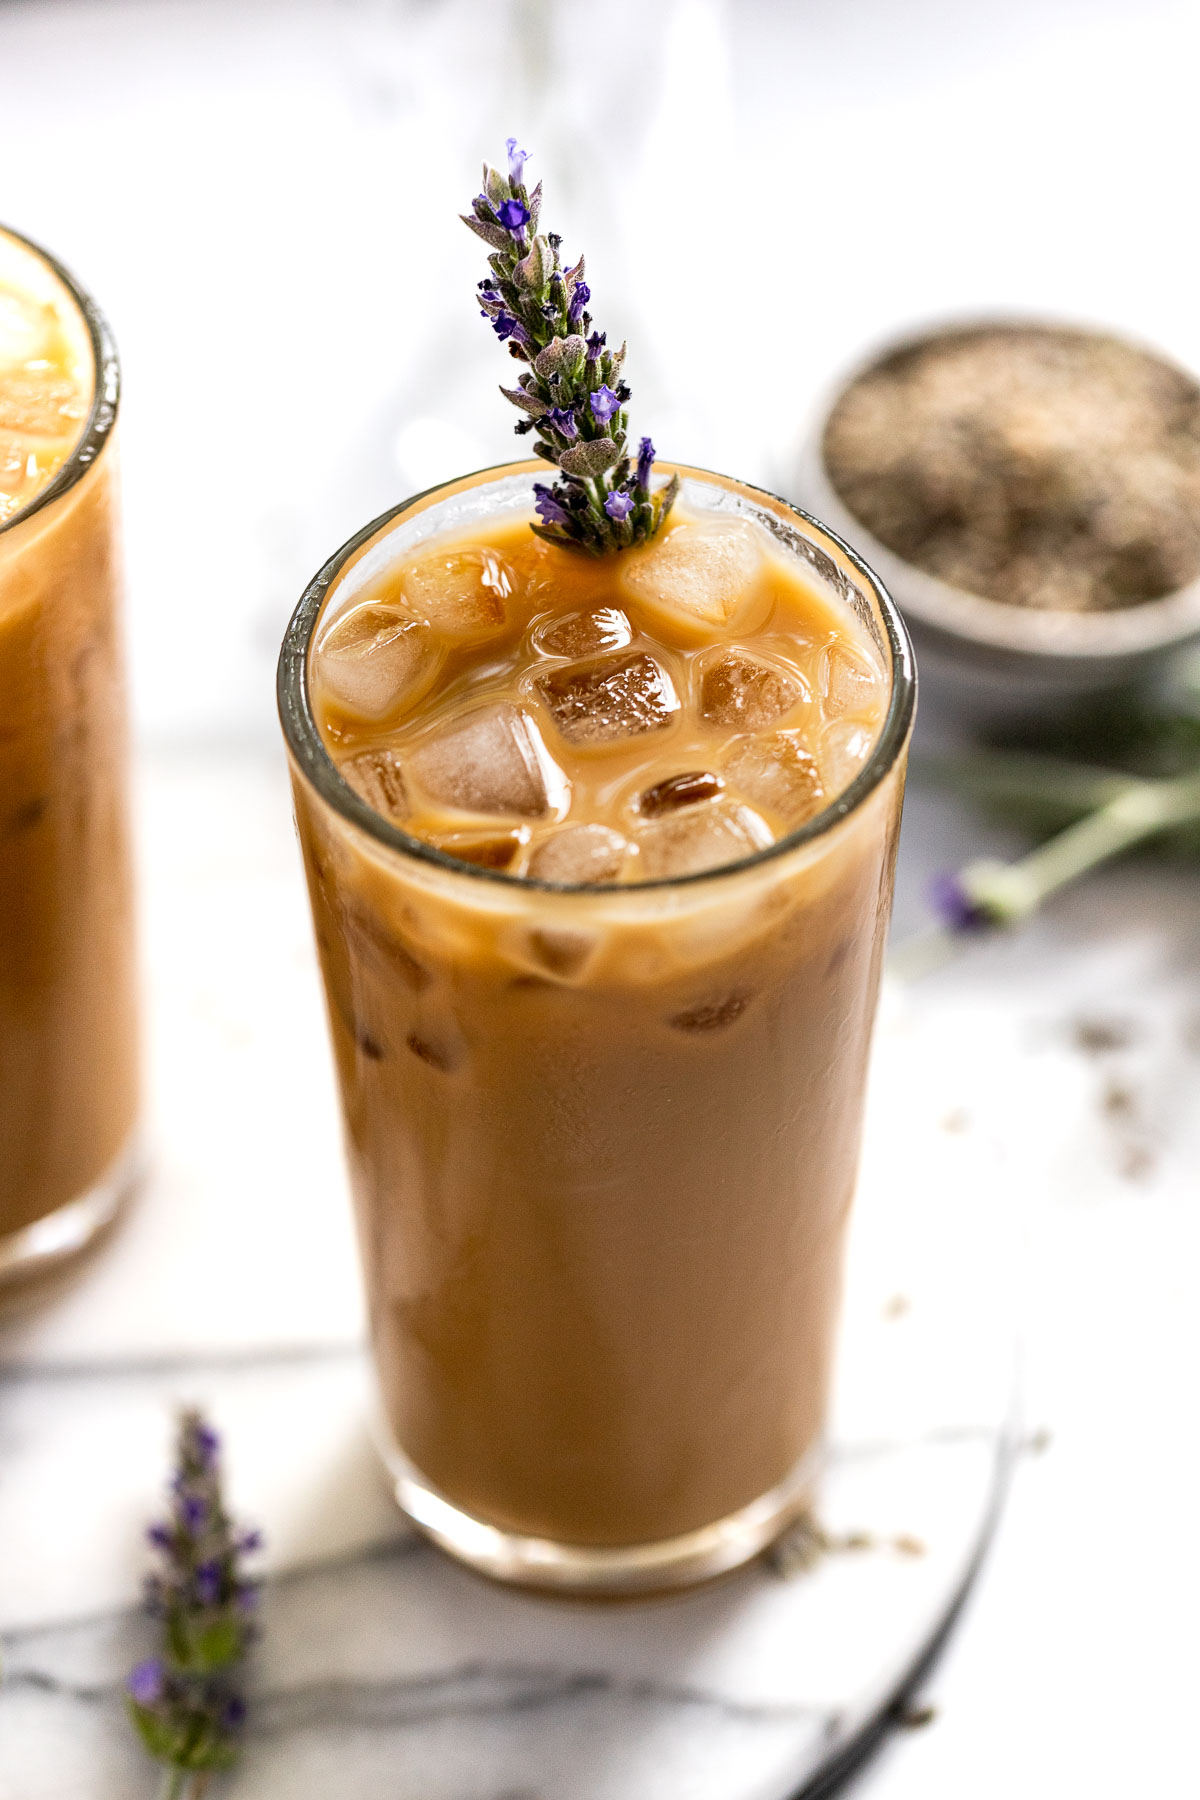 Iced Lavender Latte with lavender sprig on white tray.